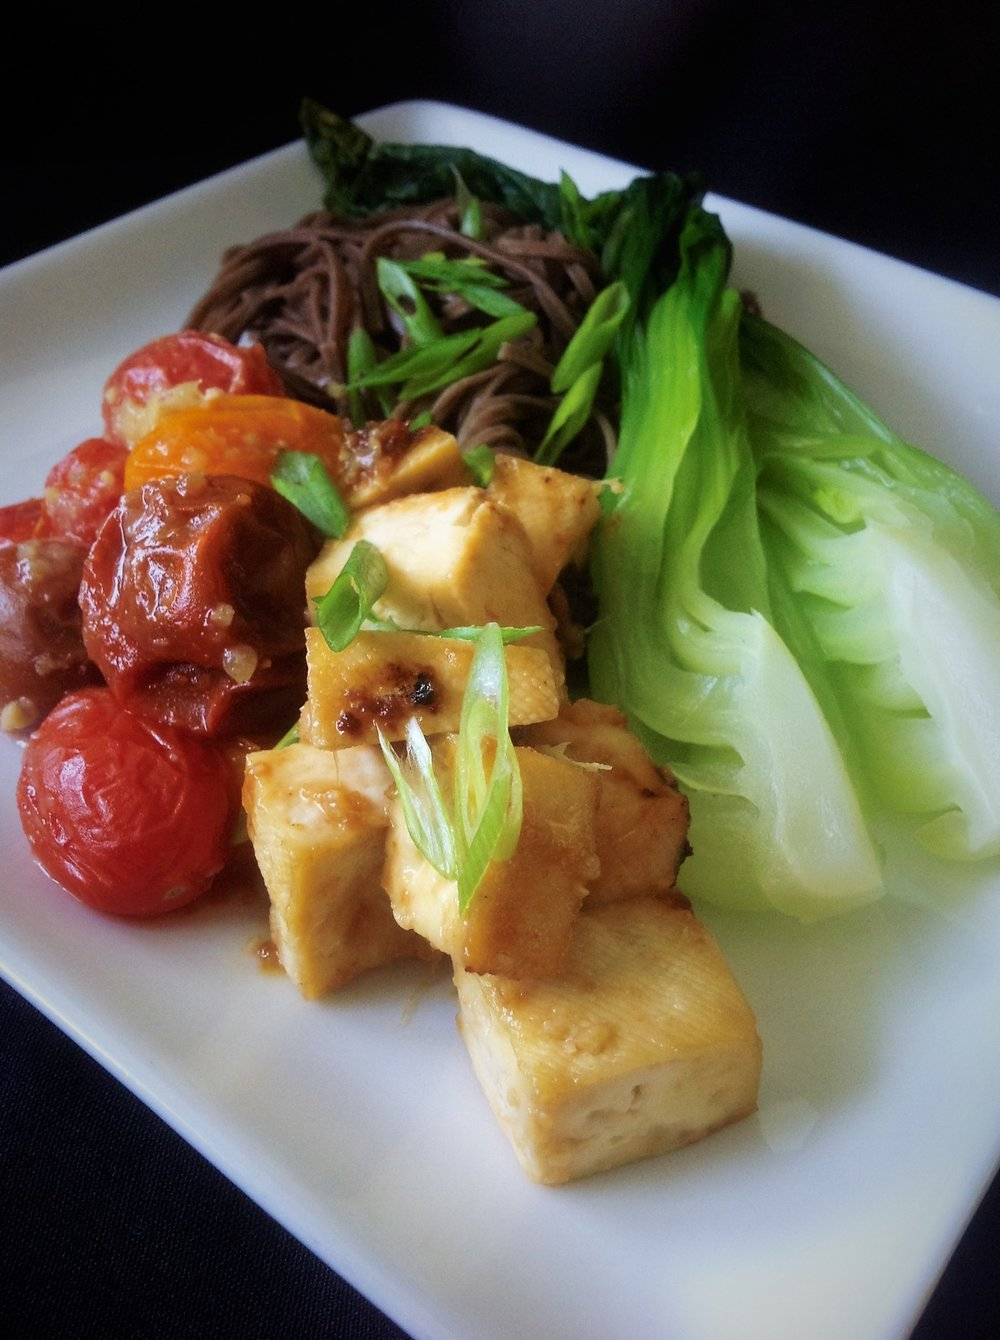 Ginger Miso Glazed Tofu and Cherry Tomatoes with Soba and Baby Bok Choy - Healthy, Plant-Based, Vegan, Oil-Free Asian Recipe